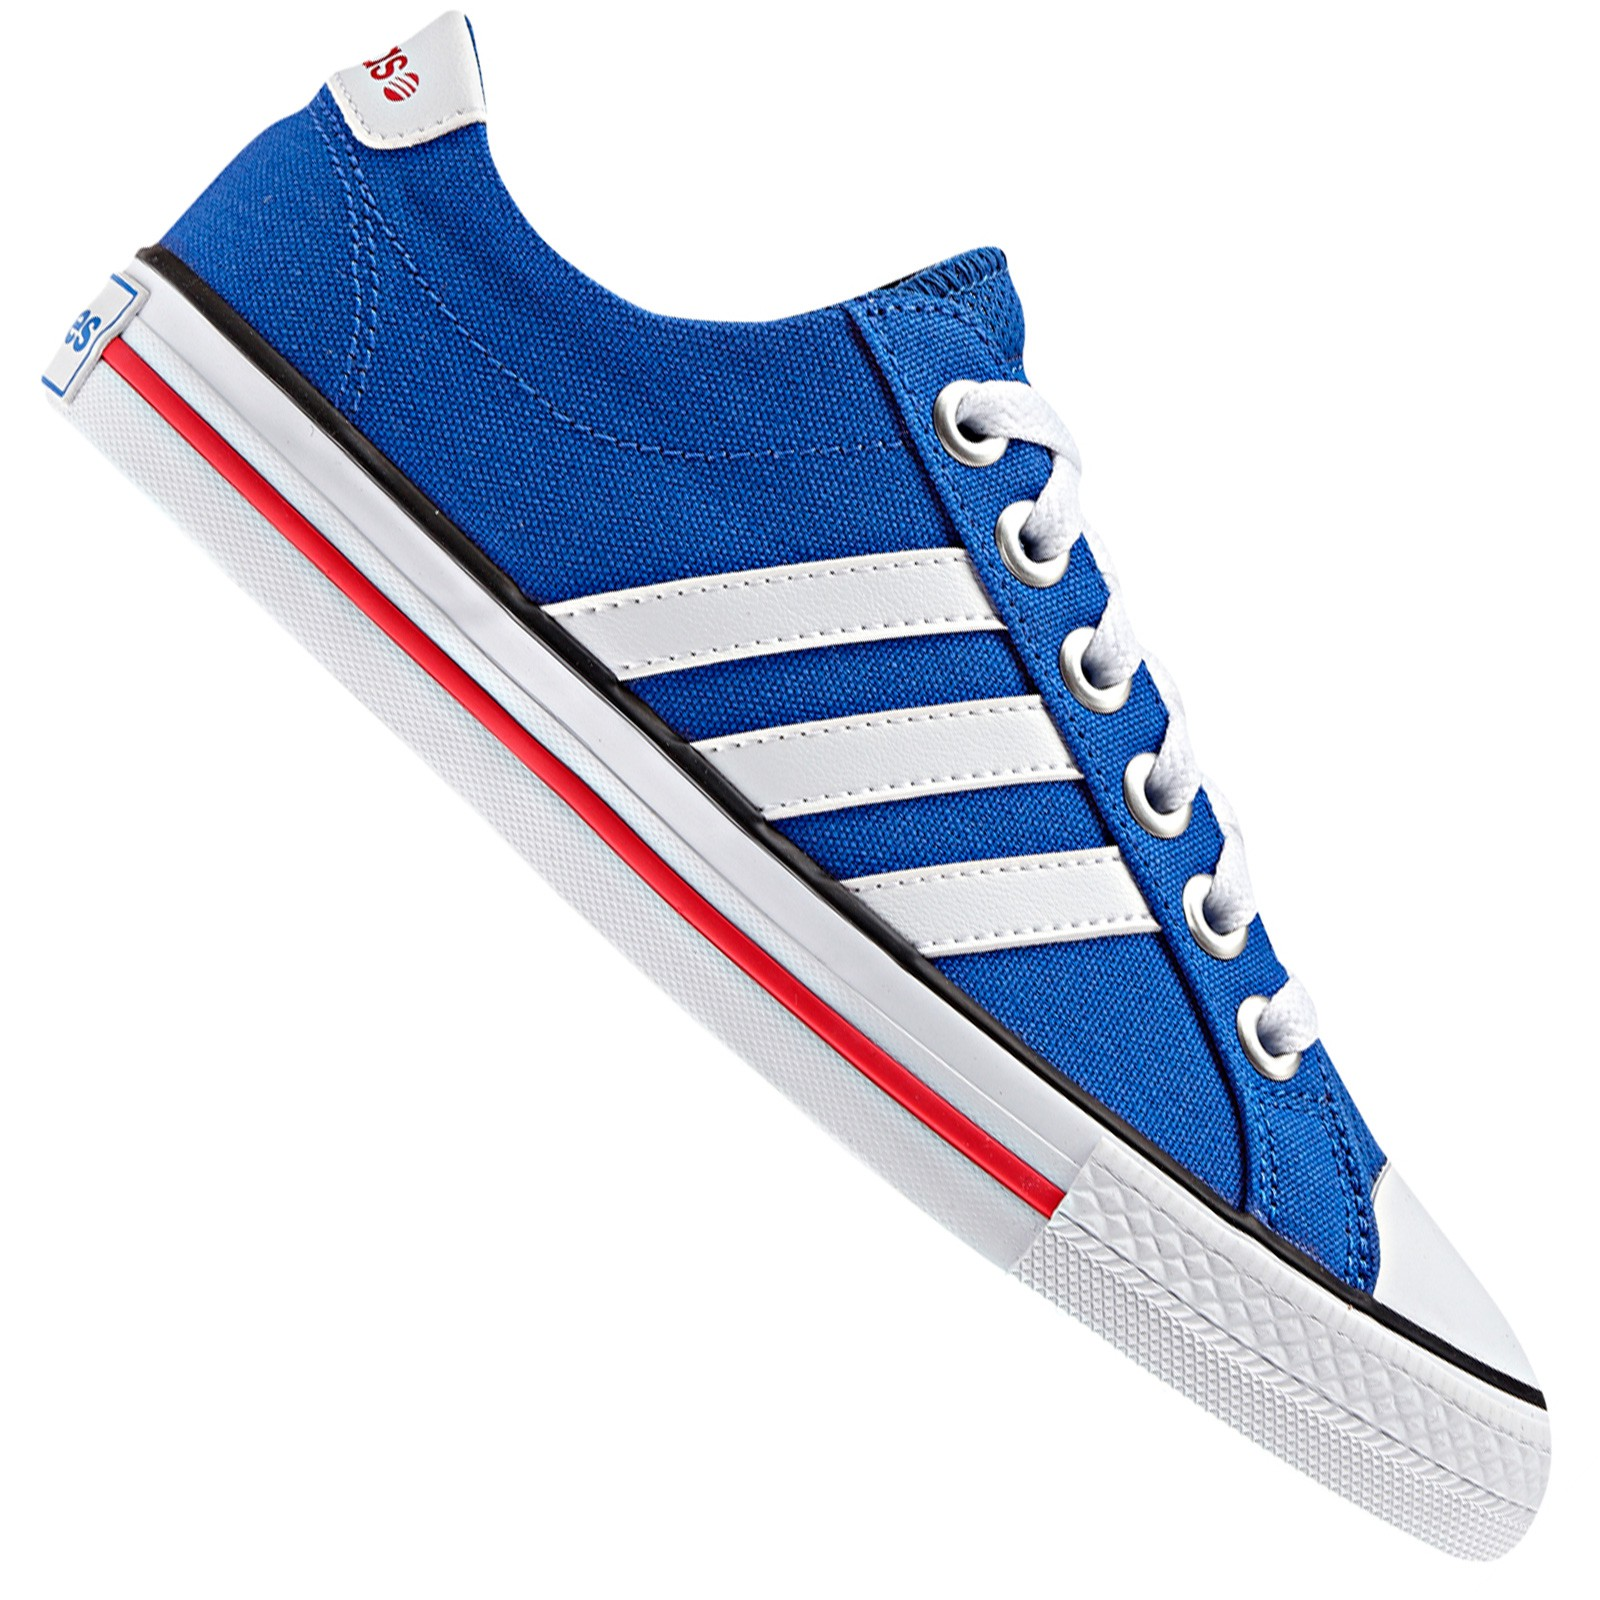 Details about Adidas Neo Label Canvas Vl 3 Stripes Derby Trainers Lifestyle  Shoes Blue White 234dd5082